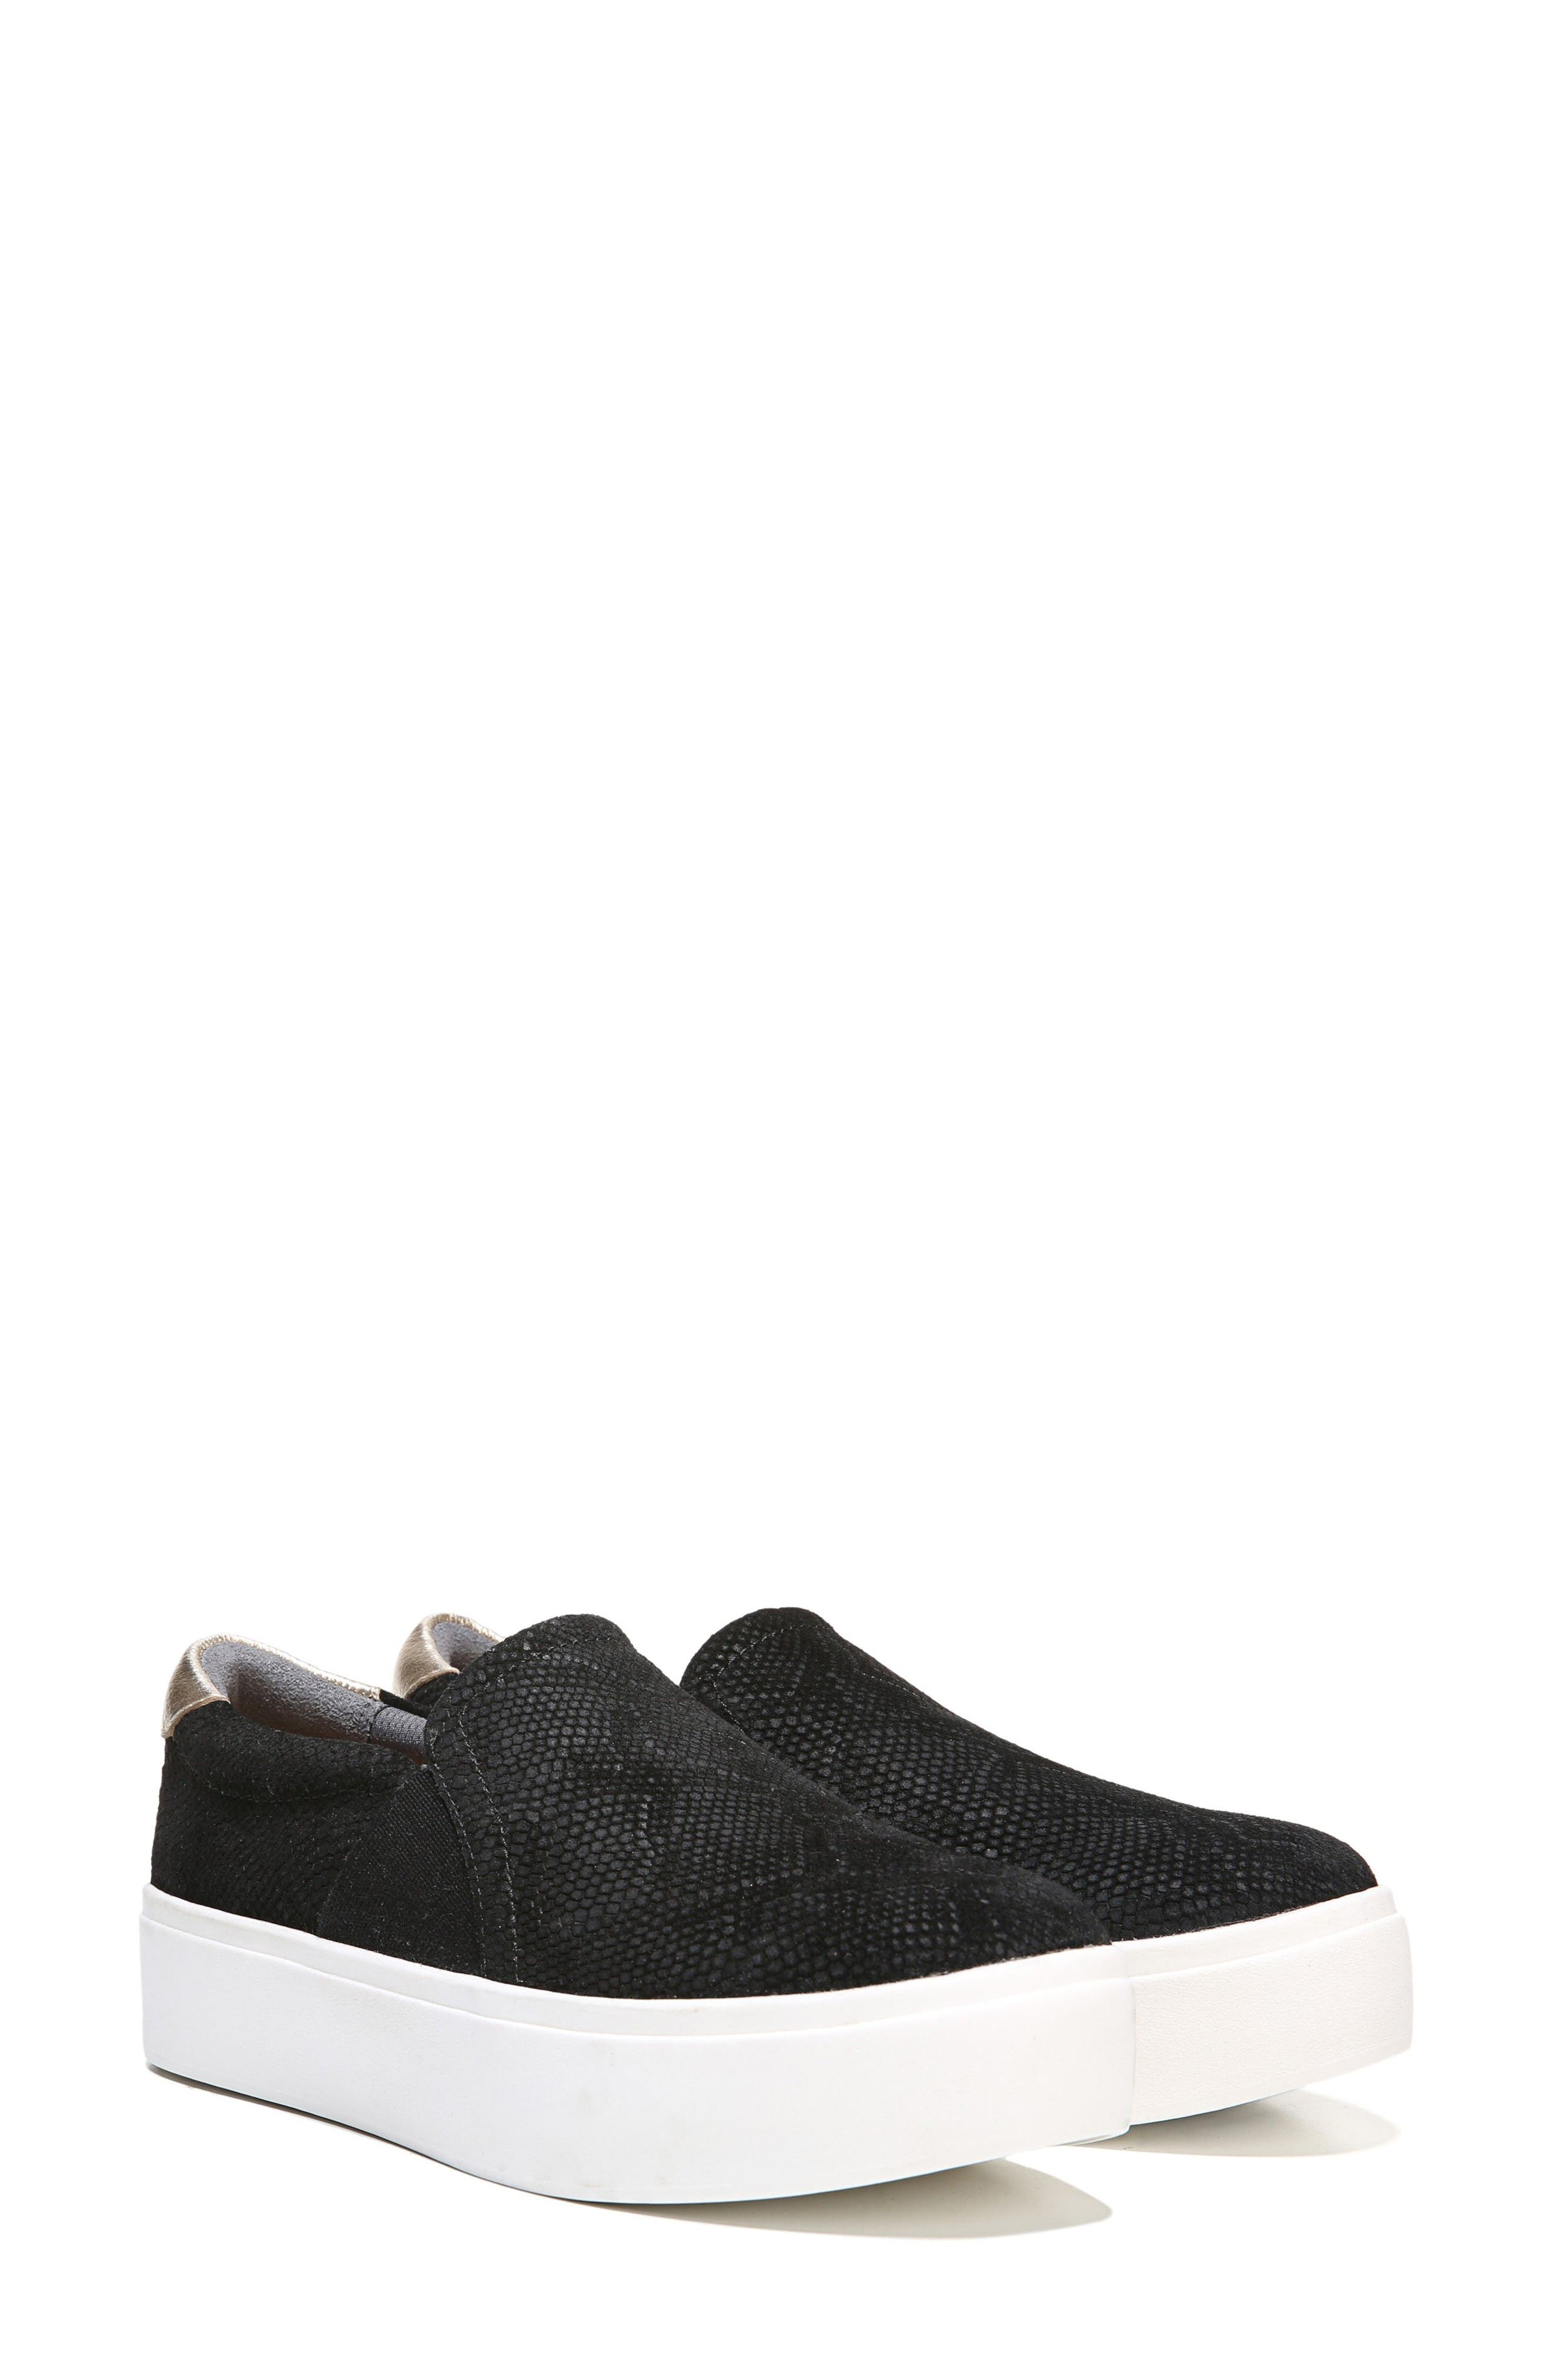 DR. SCHOLL'S, Abbot Slip-On Sneaker, Alternate thumbnail 7, color, BLACK SUEDE